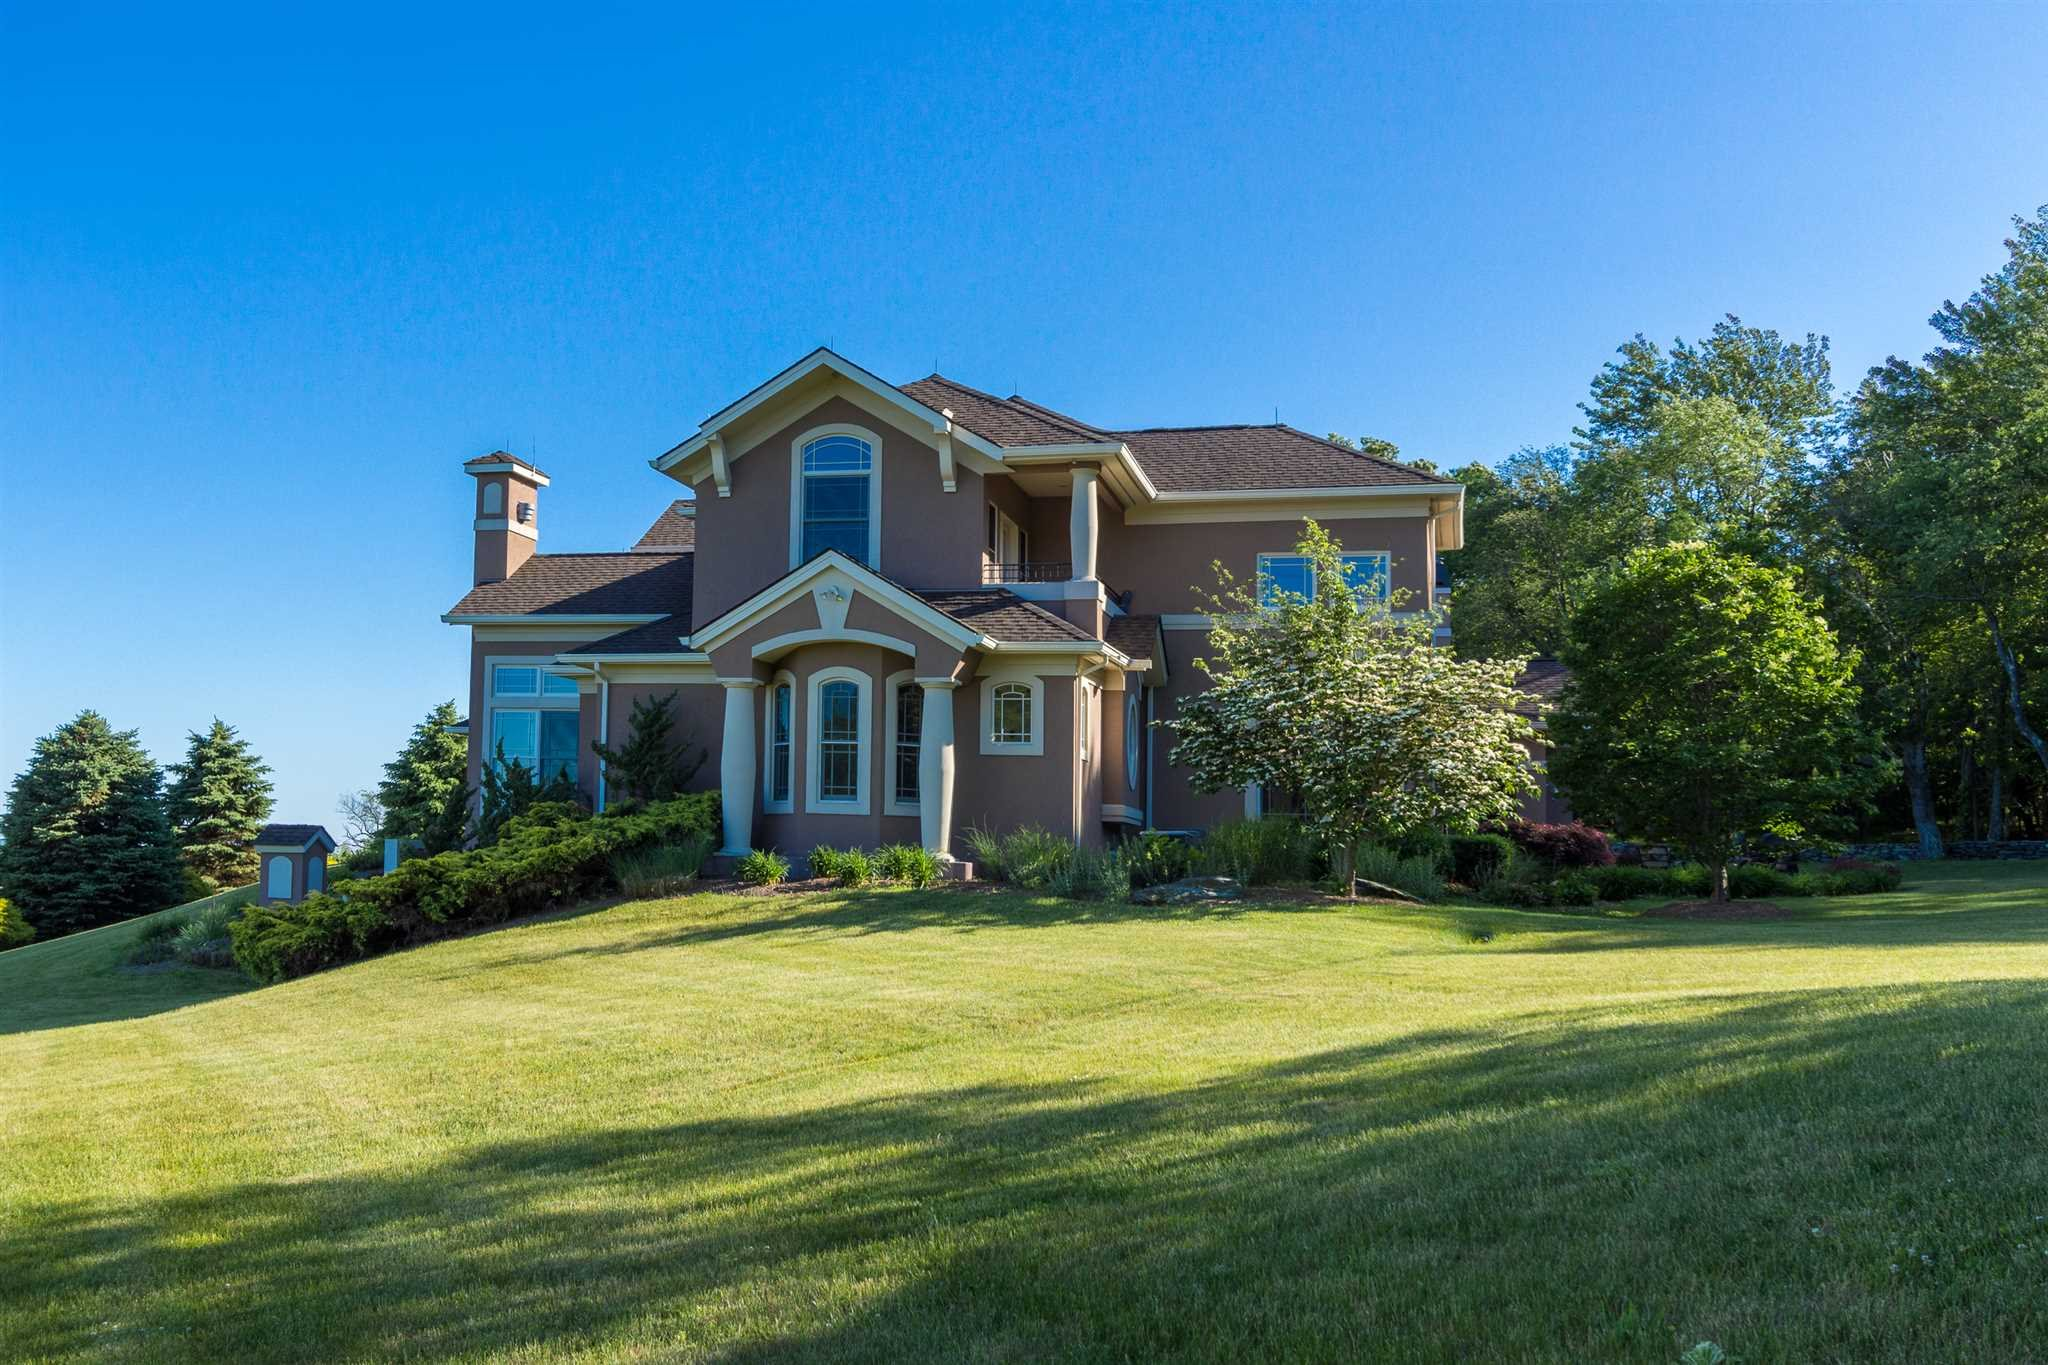 Clinton corners homes for sales heather croner real - Tuscany sotheby s international realty ...